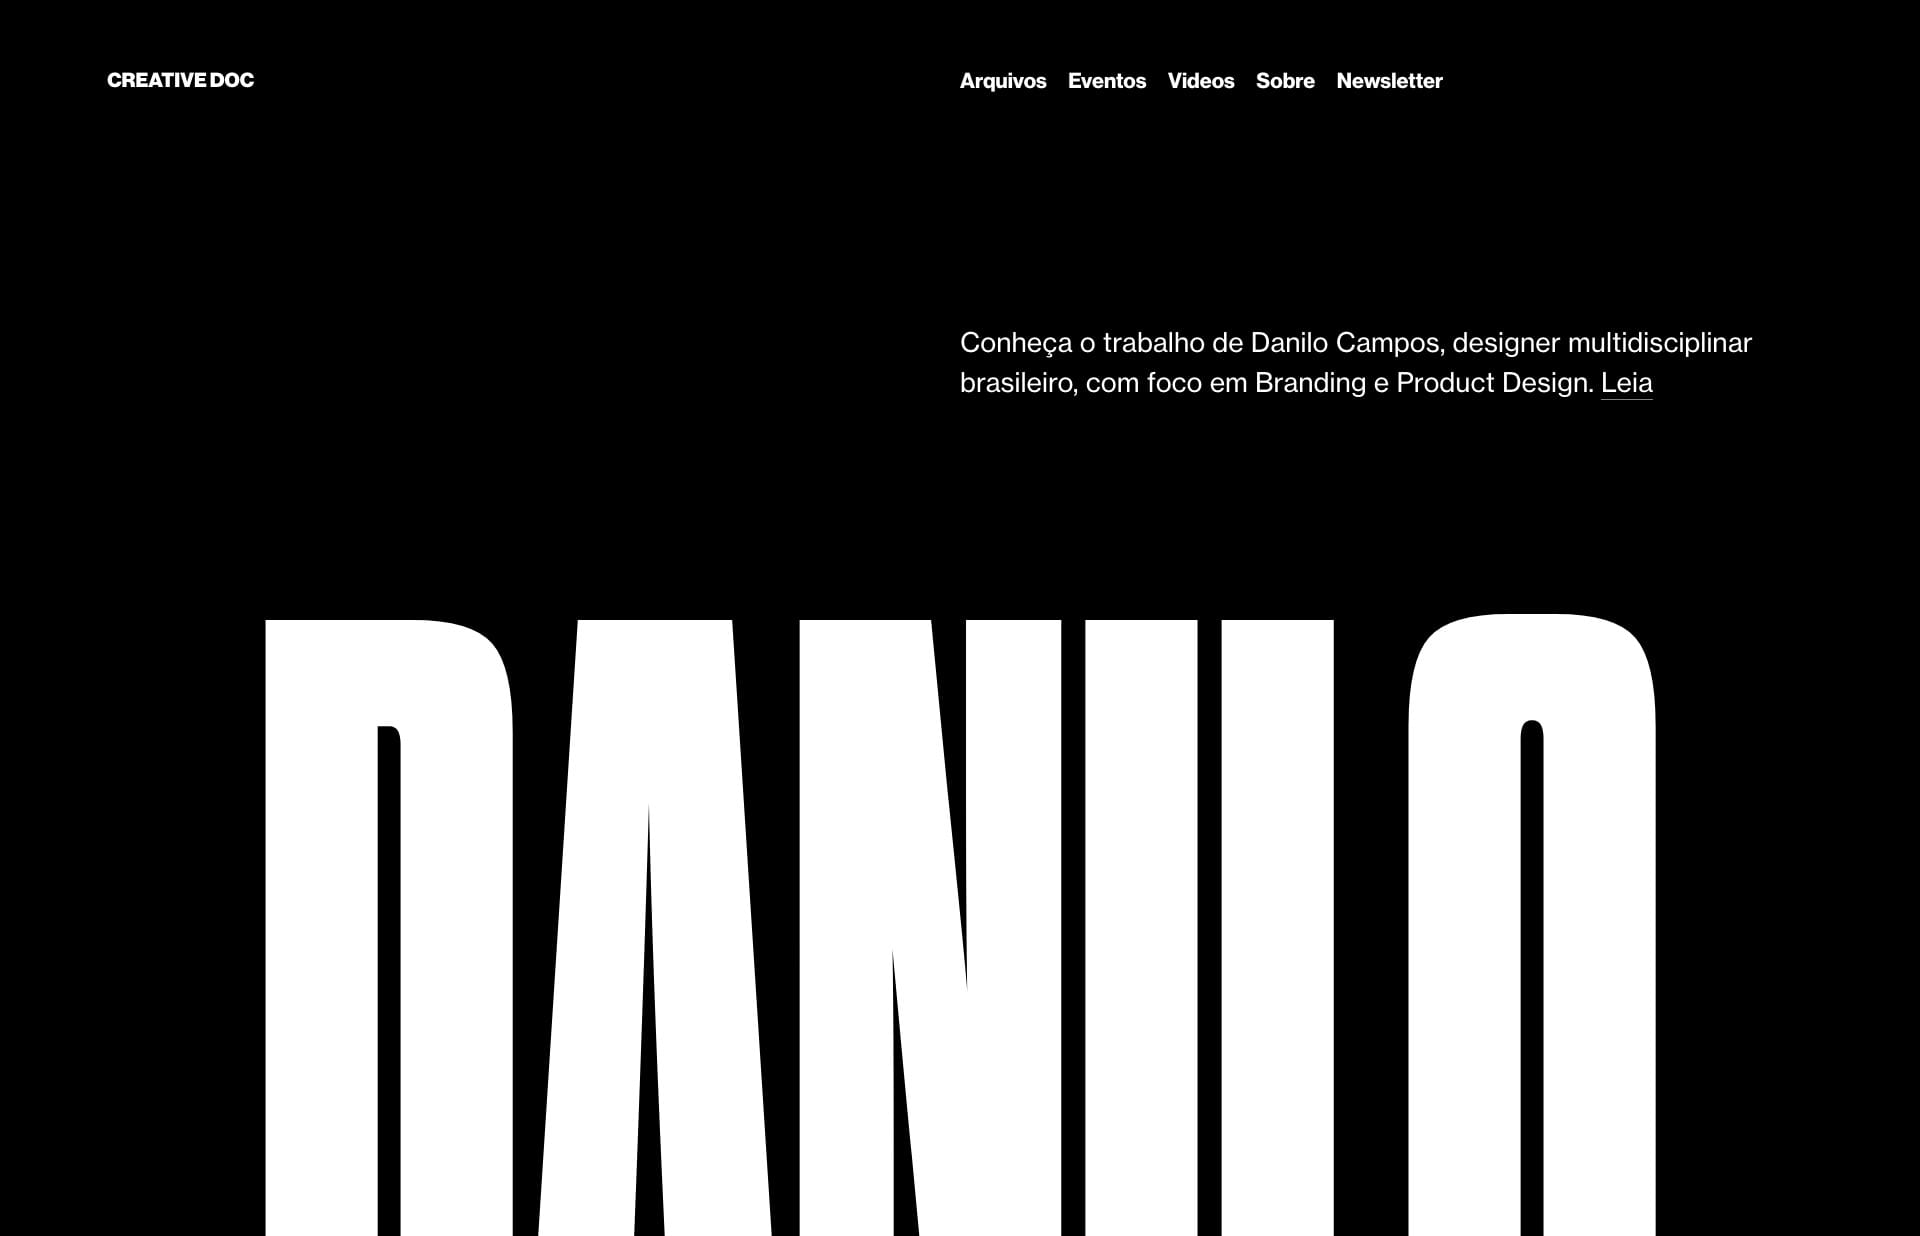 Screenshot of the website Creative Doc, featured on The Gallery, a curated collection of minimal websites